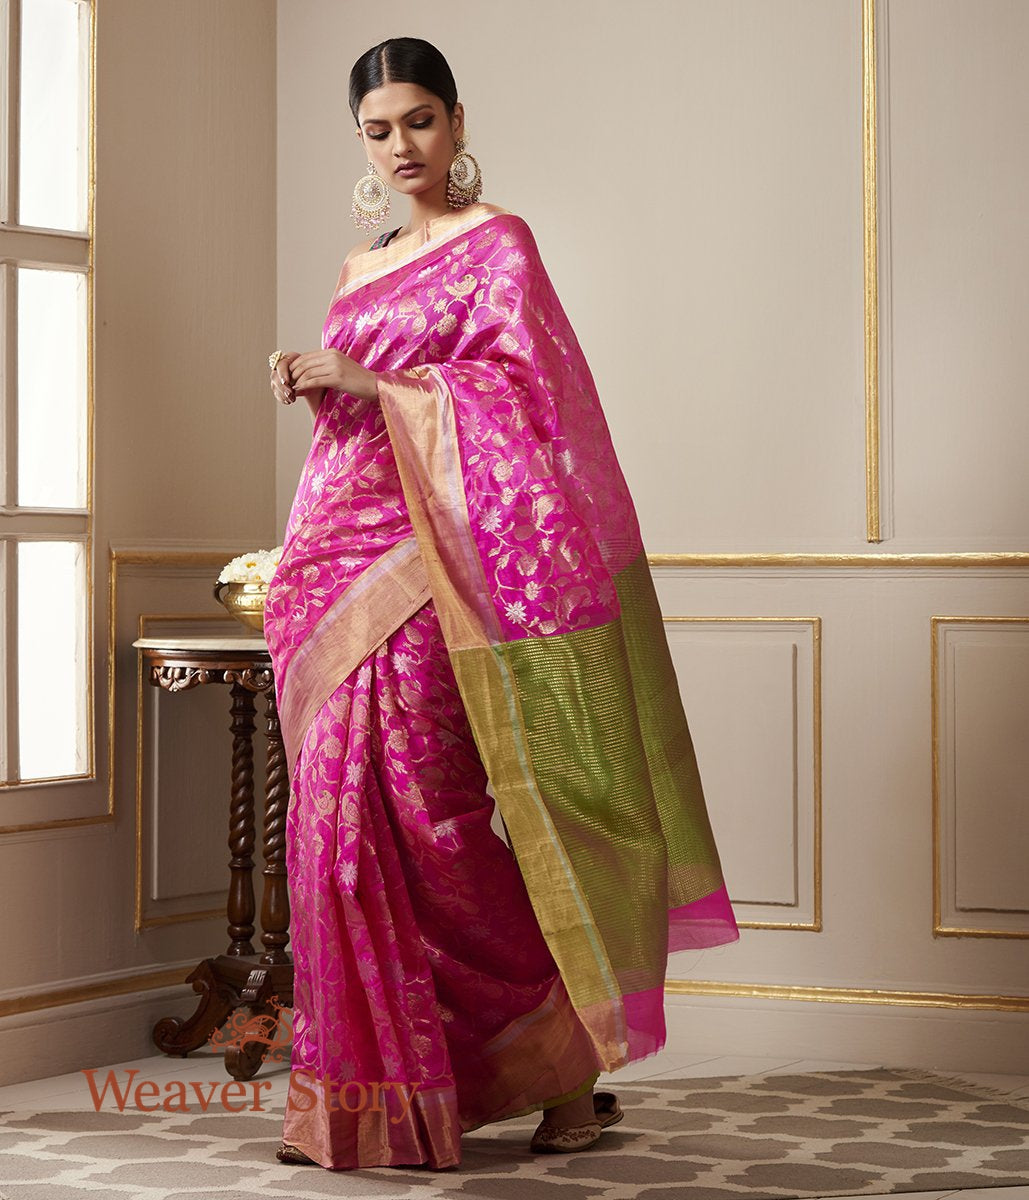 Handwoven Pink Chanderi Silk Saree with Birds Woven in Zari